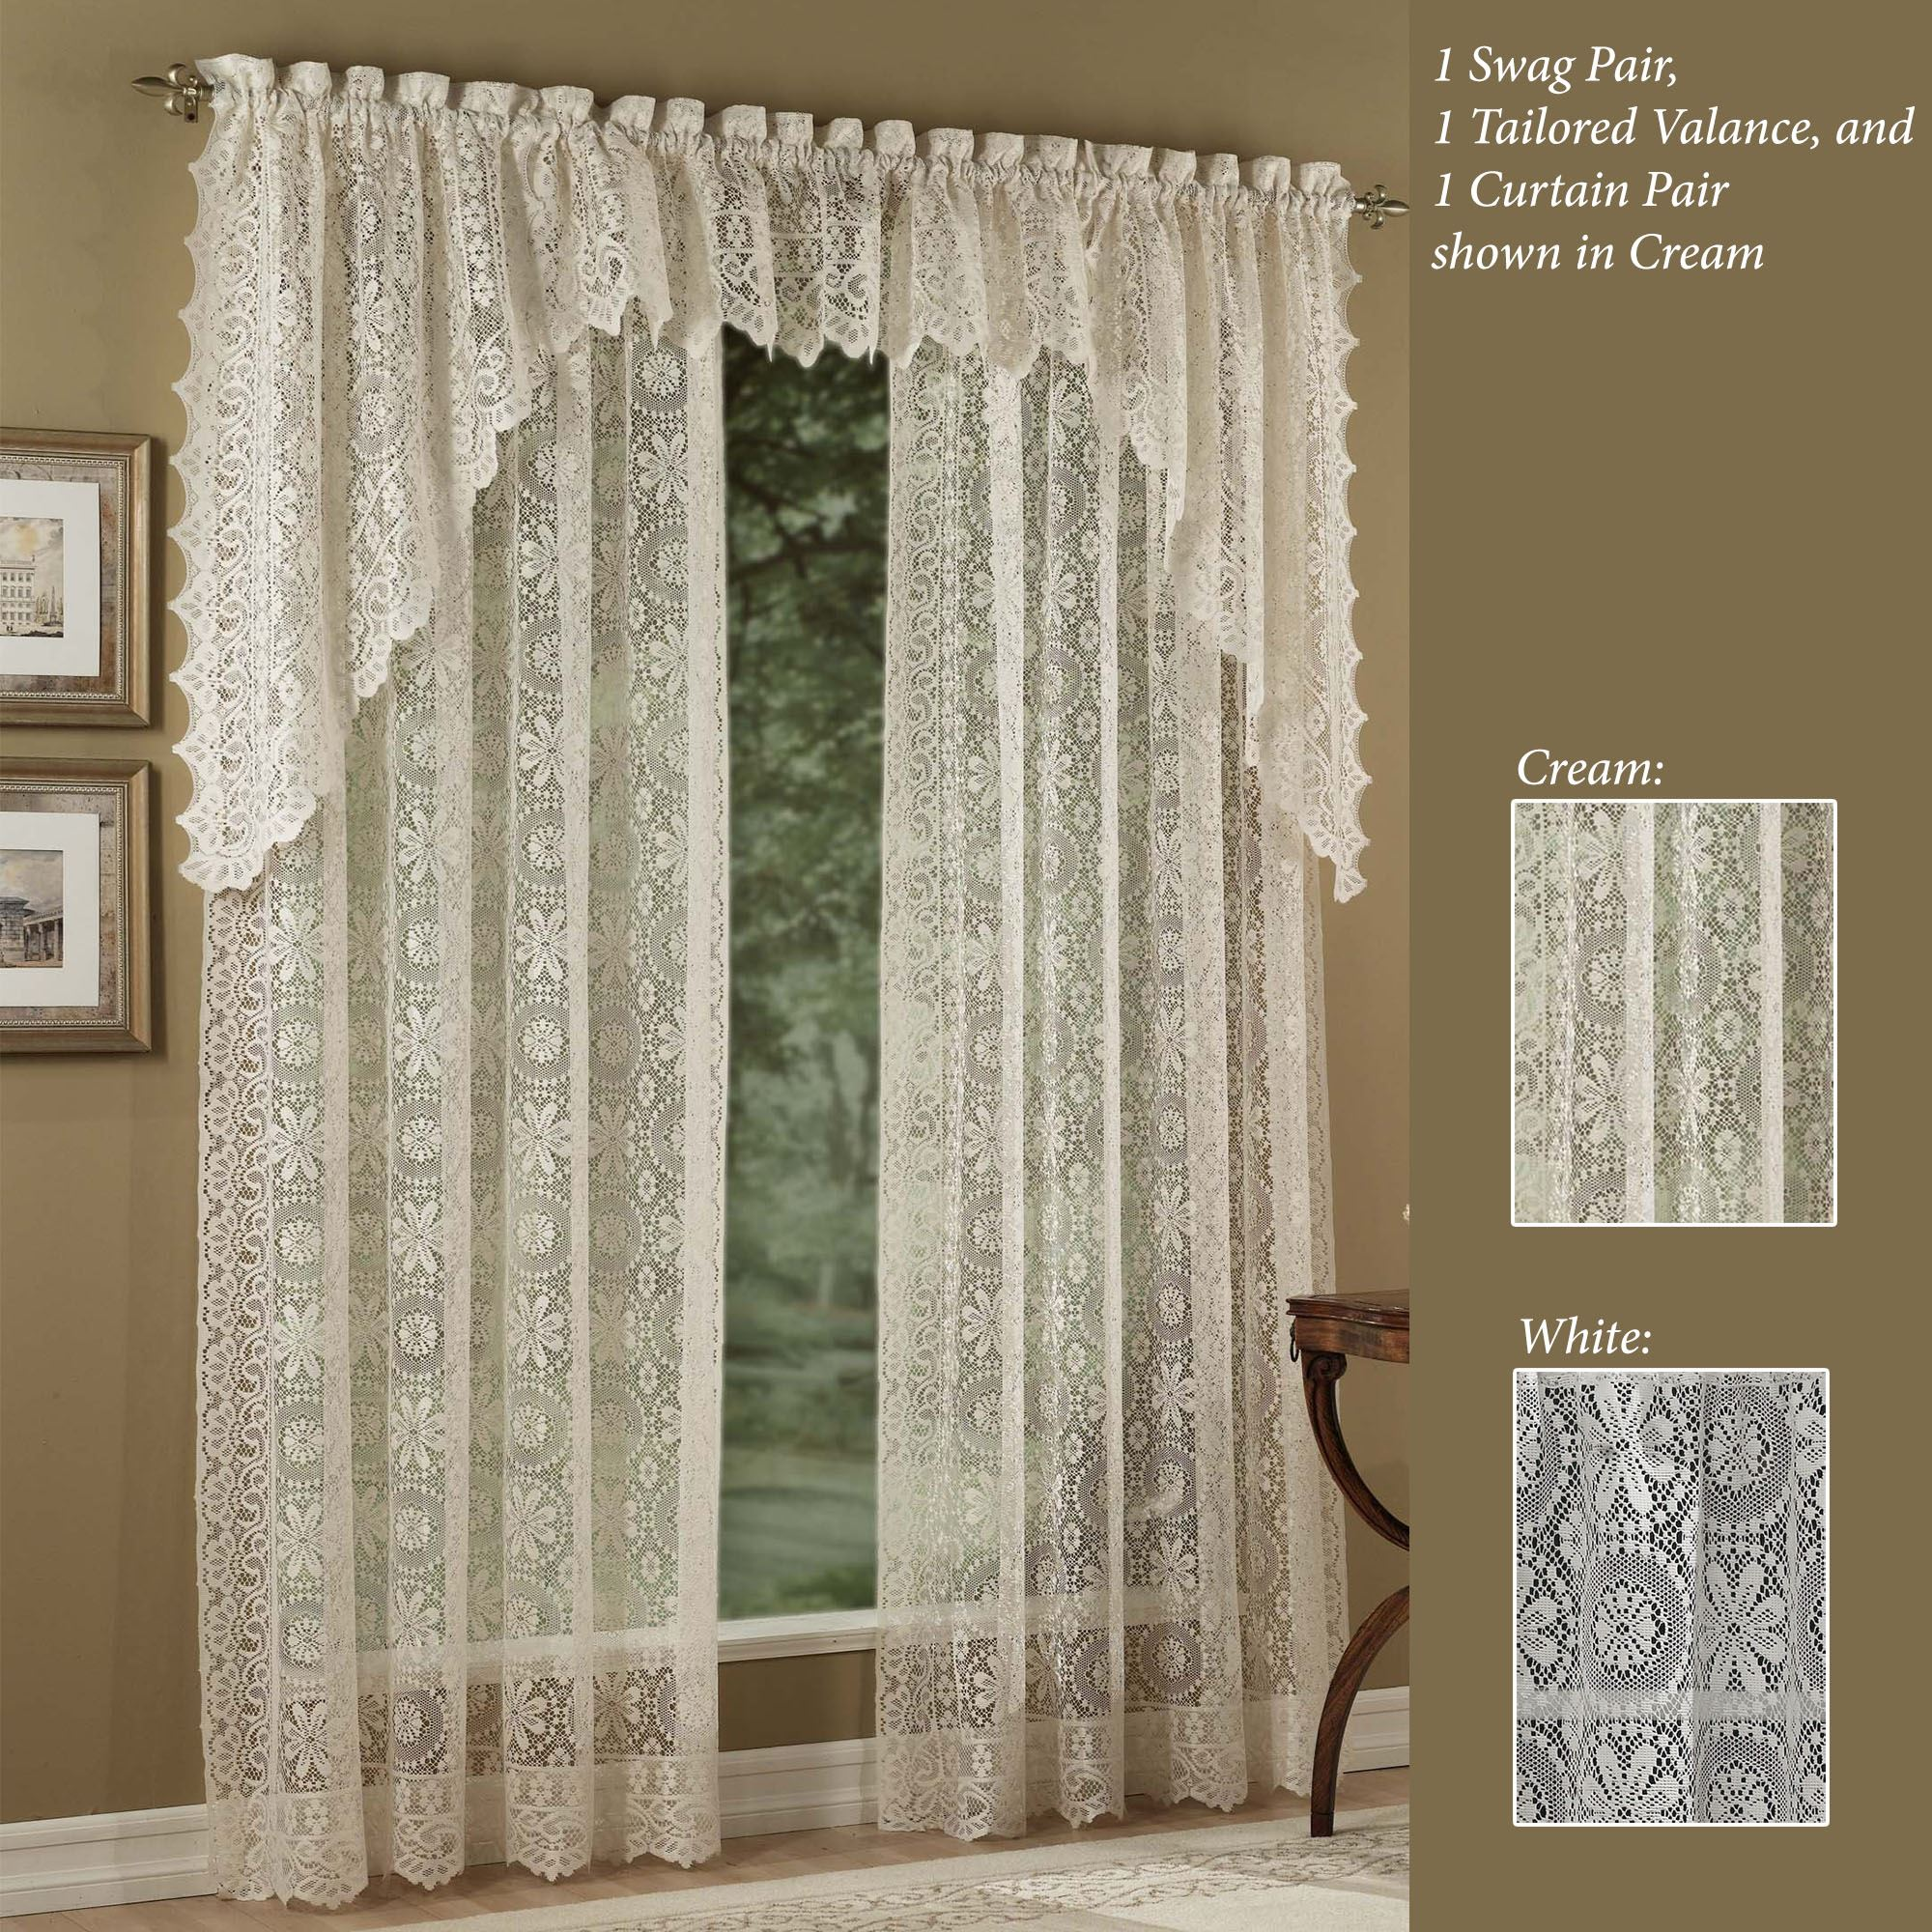 Hopewell Lace Window Treatment